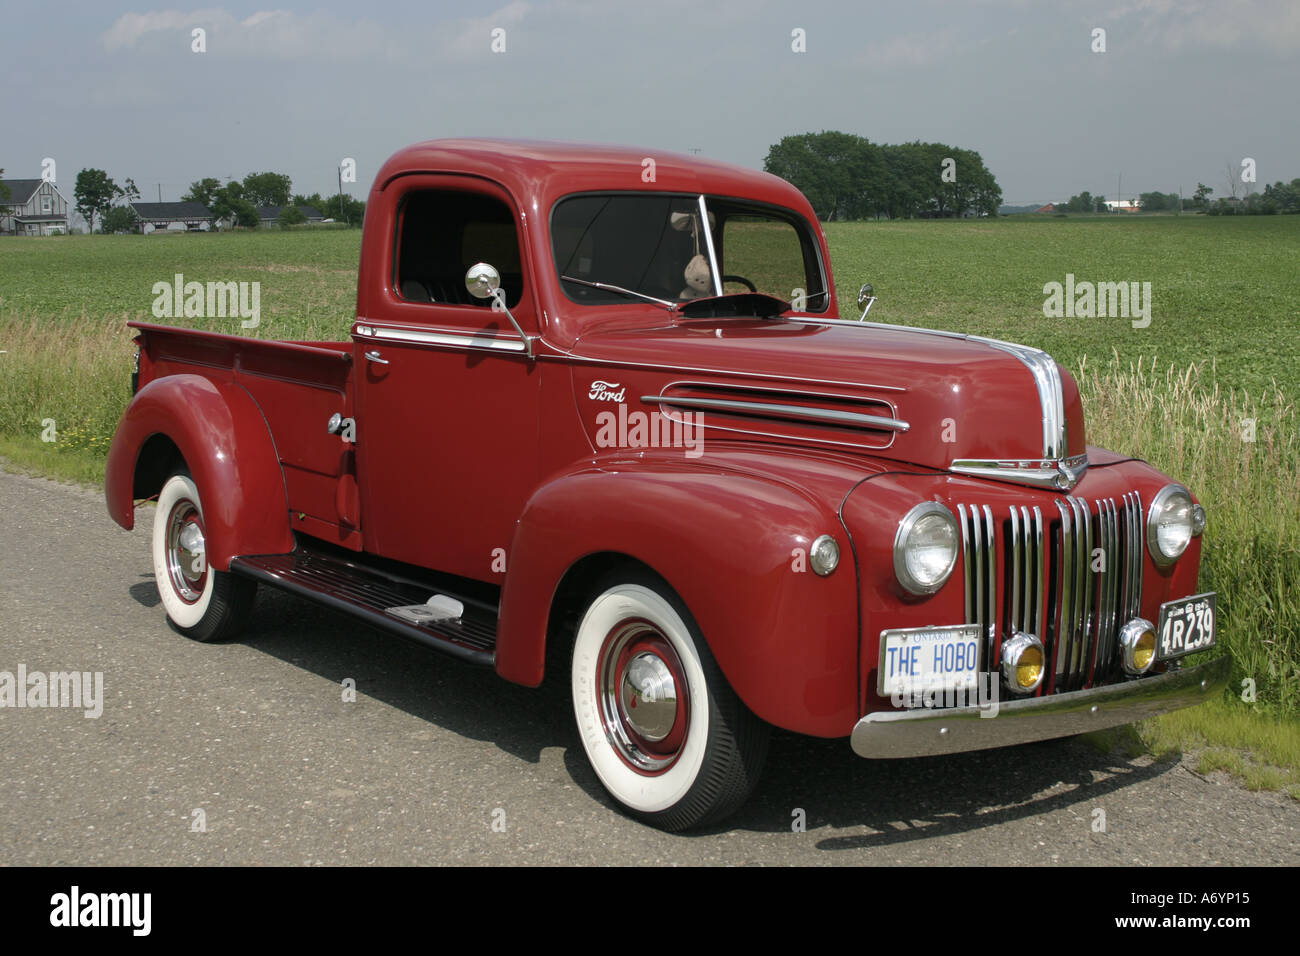 1946 ford pickup truck stock photo 3811860 alamy. Black Bedroom Furniture Sets. Home Design Ideas